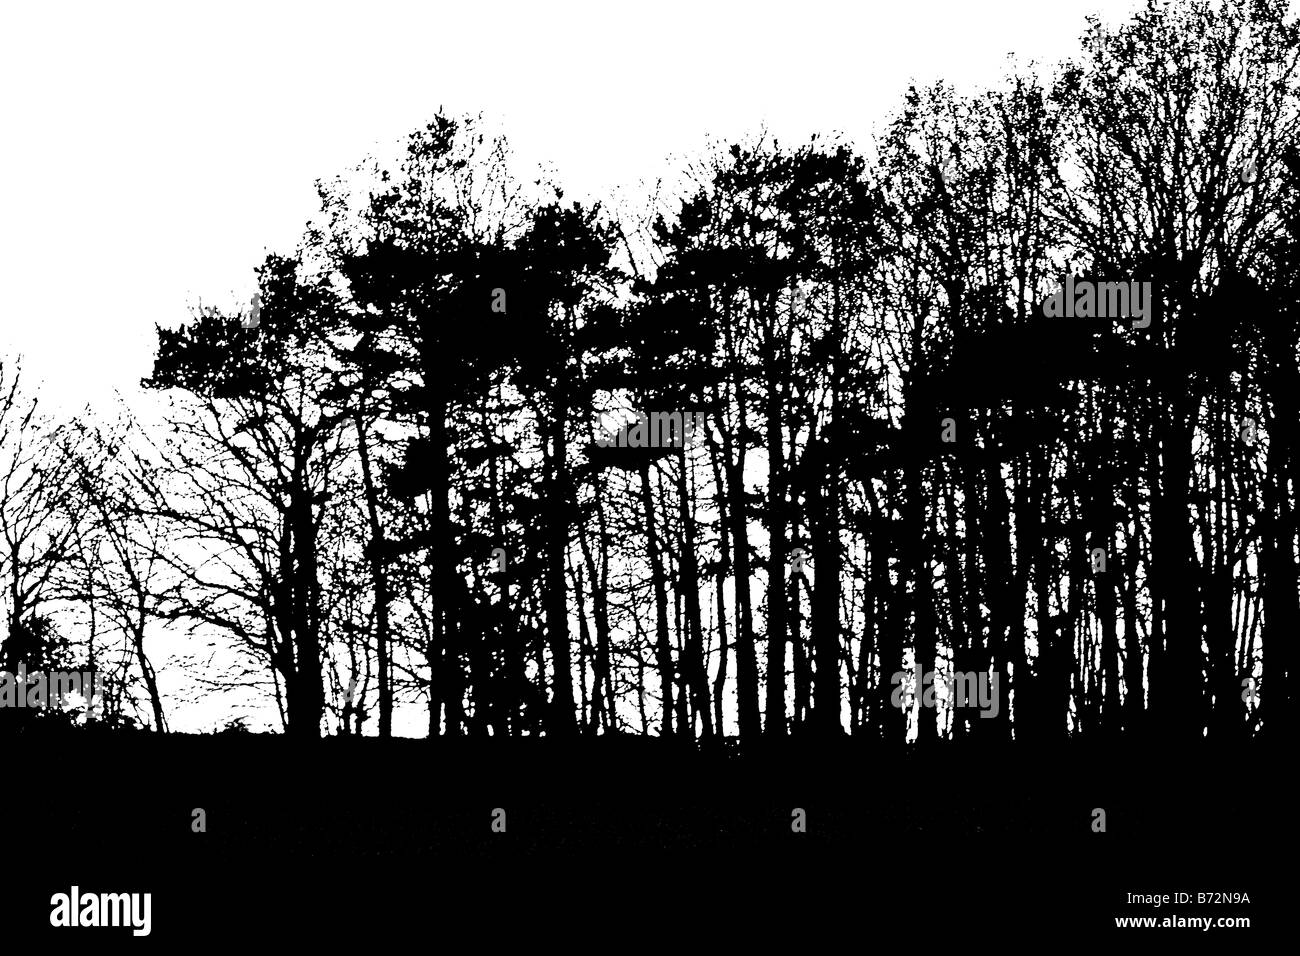 unset behind trees abstract monochrome - Stock Image